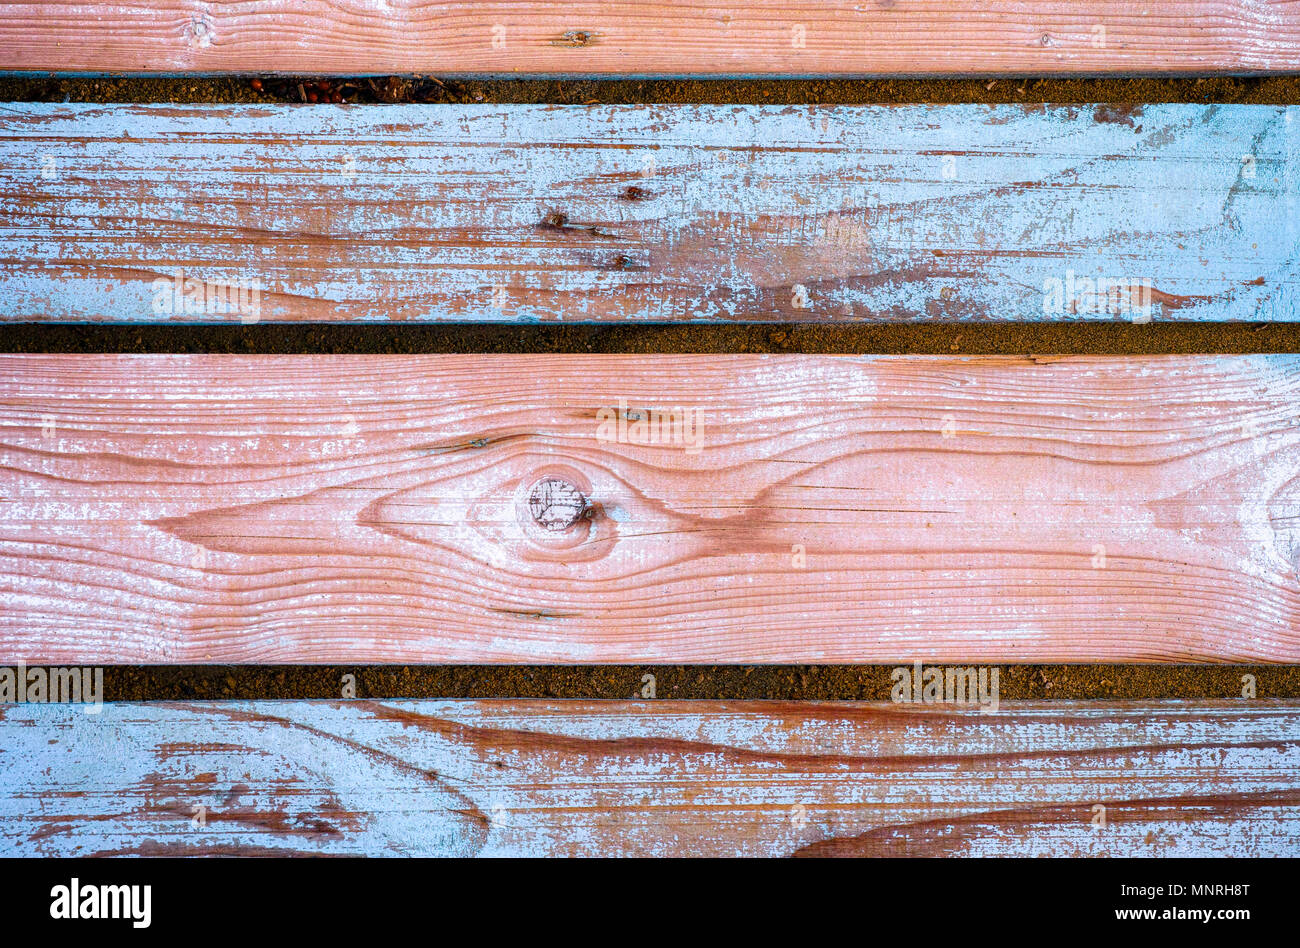 Background of wooden planks with peeling blue paint. Full frame. - Stock Image